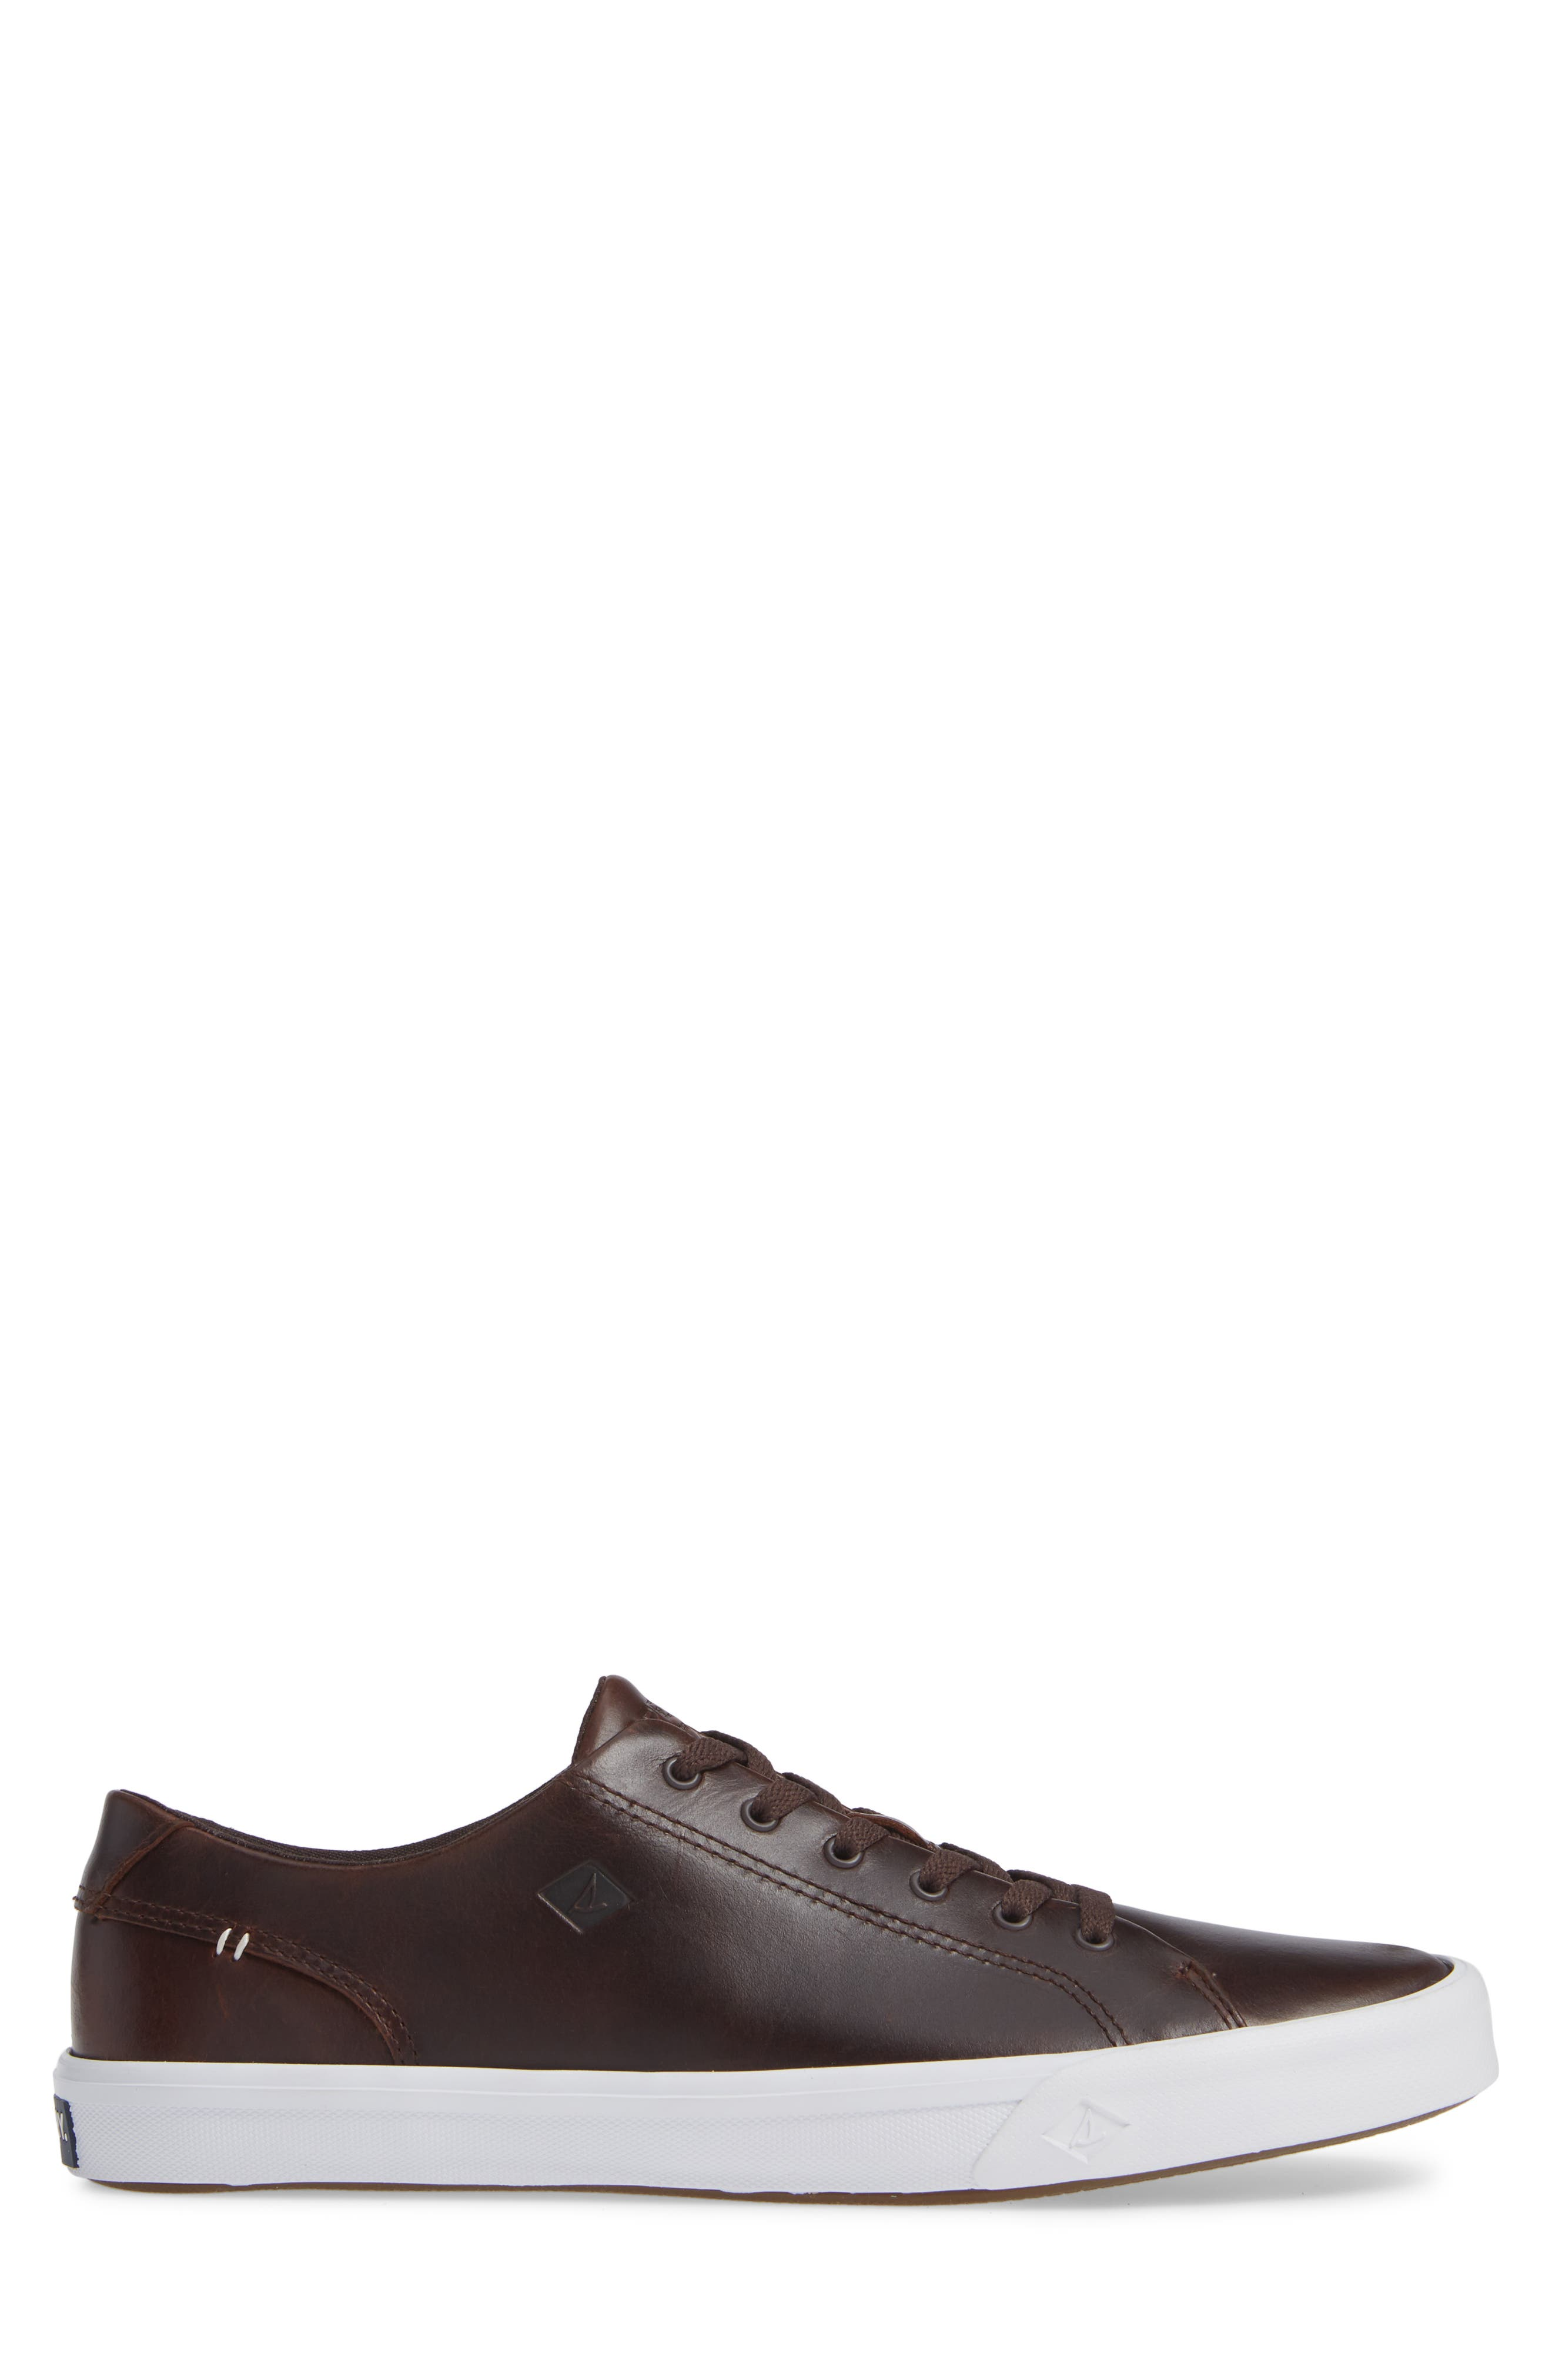 SPERRY, Striper II Sneaker, Alternate thumbnail 3, color, AMARETTO LEATHER